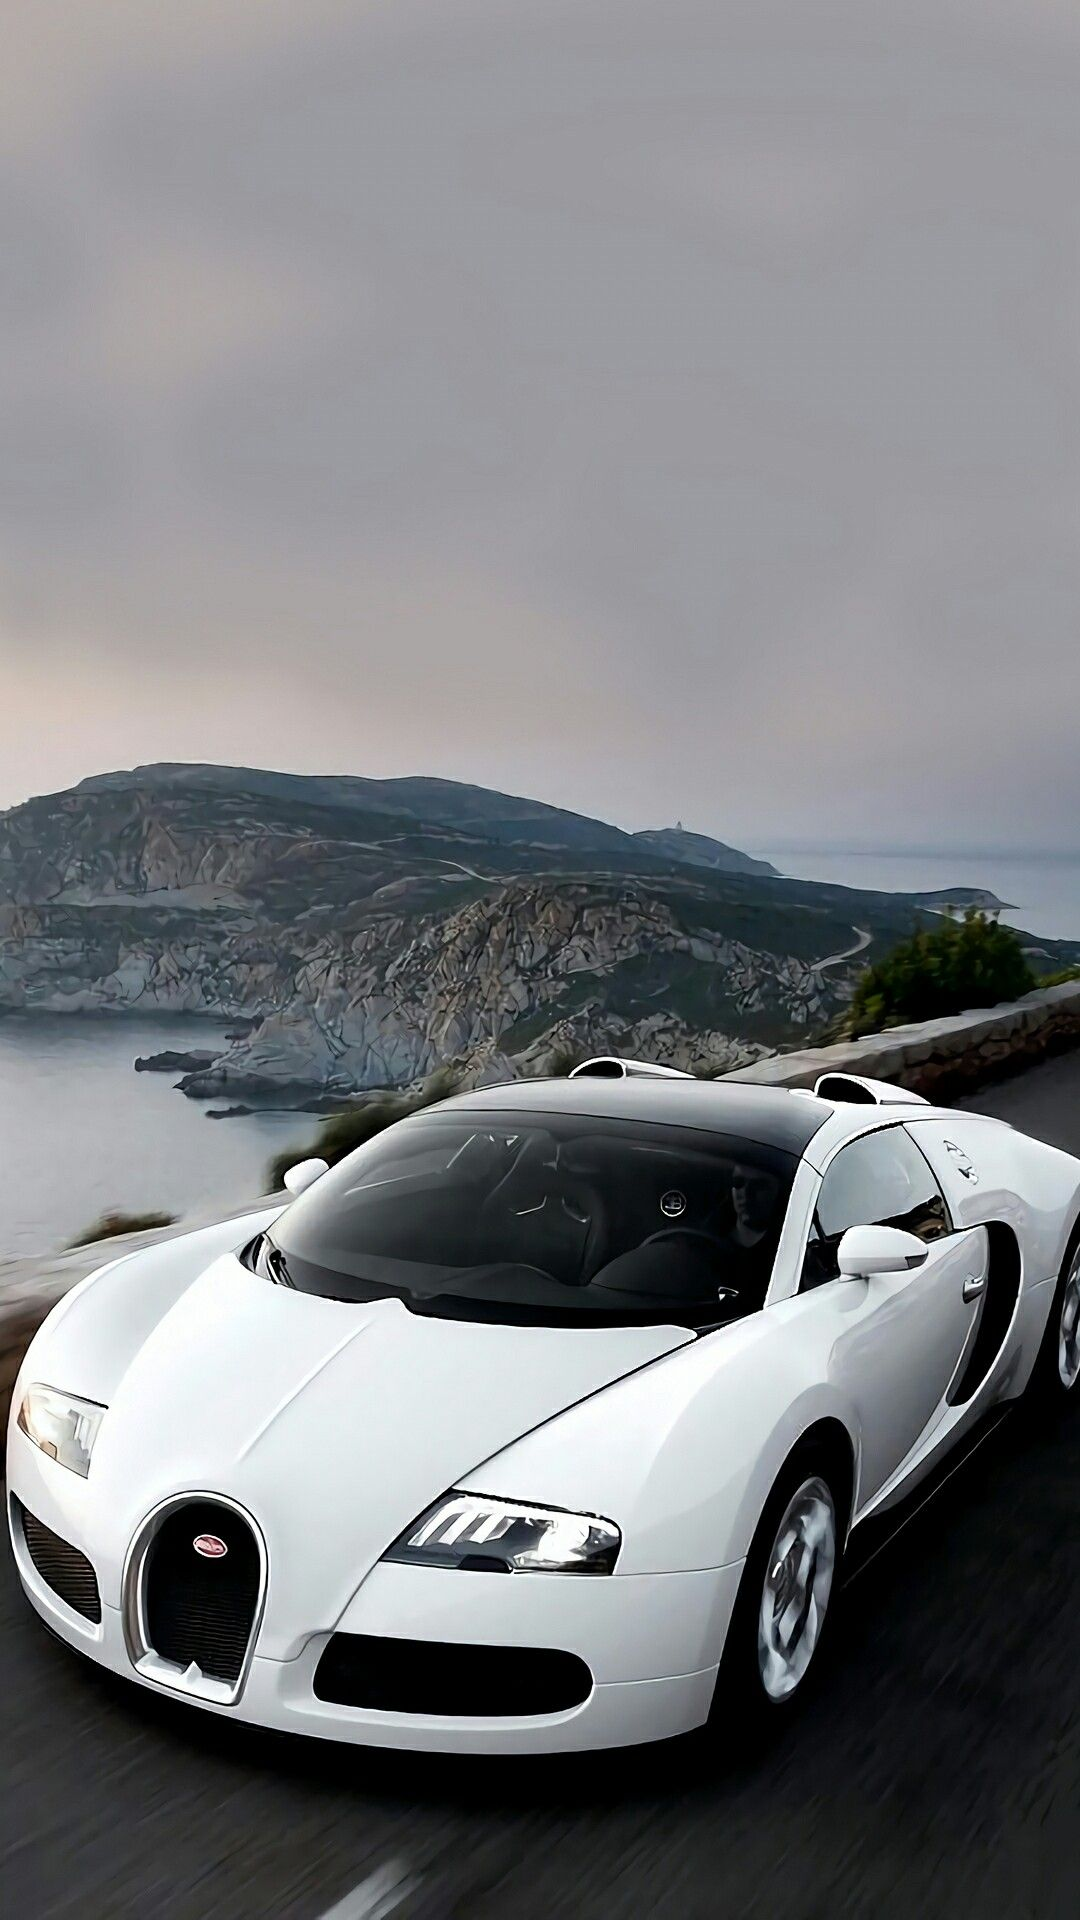 Pin By Katrina Batts On Cars Pinterest Luxury Cars Cars And